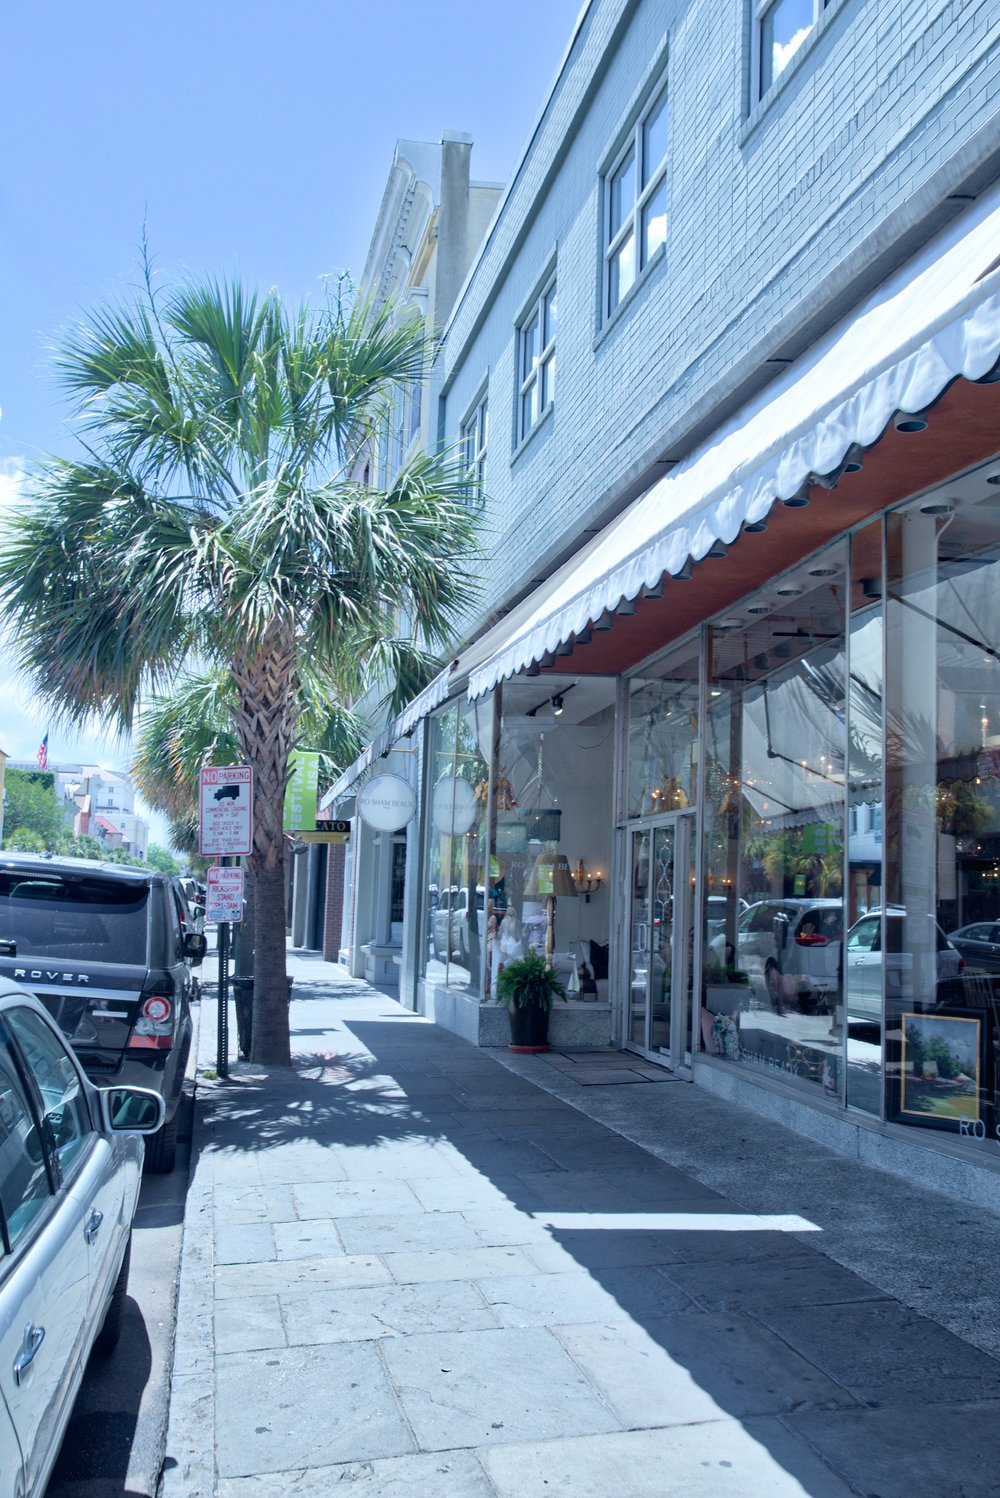 3Charleston SC King Street Shopping and Restaurants Nearby7.jpeg